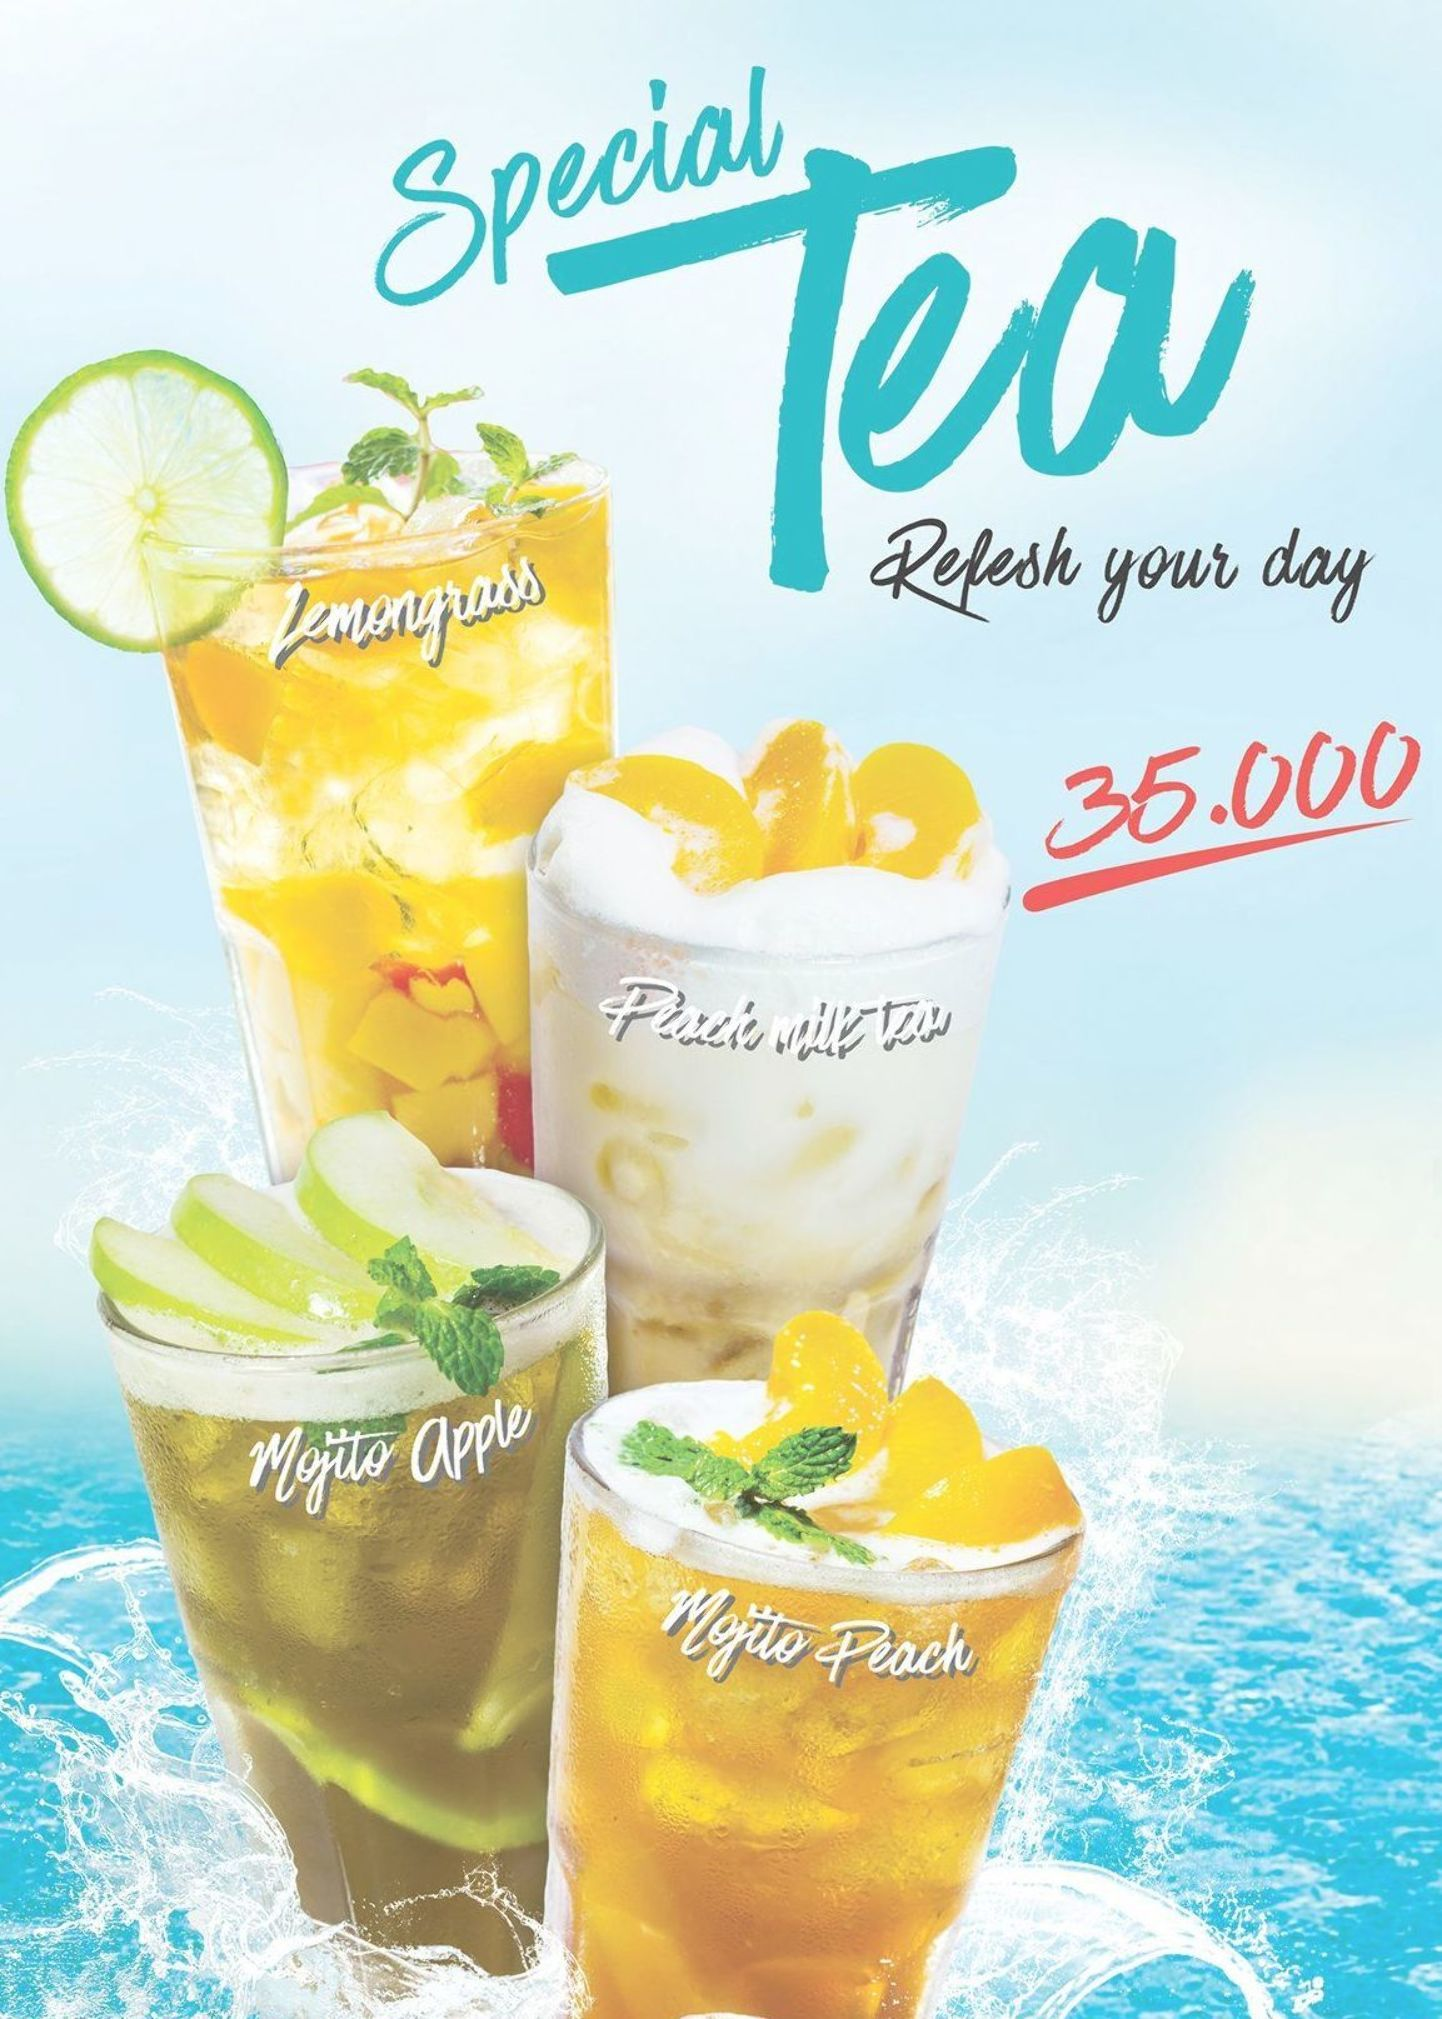 Pin By Buddie Pinkney On Drink Poster Beverage Poster Drinks Design Food Poster Design